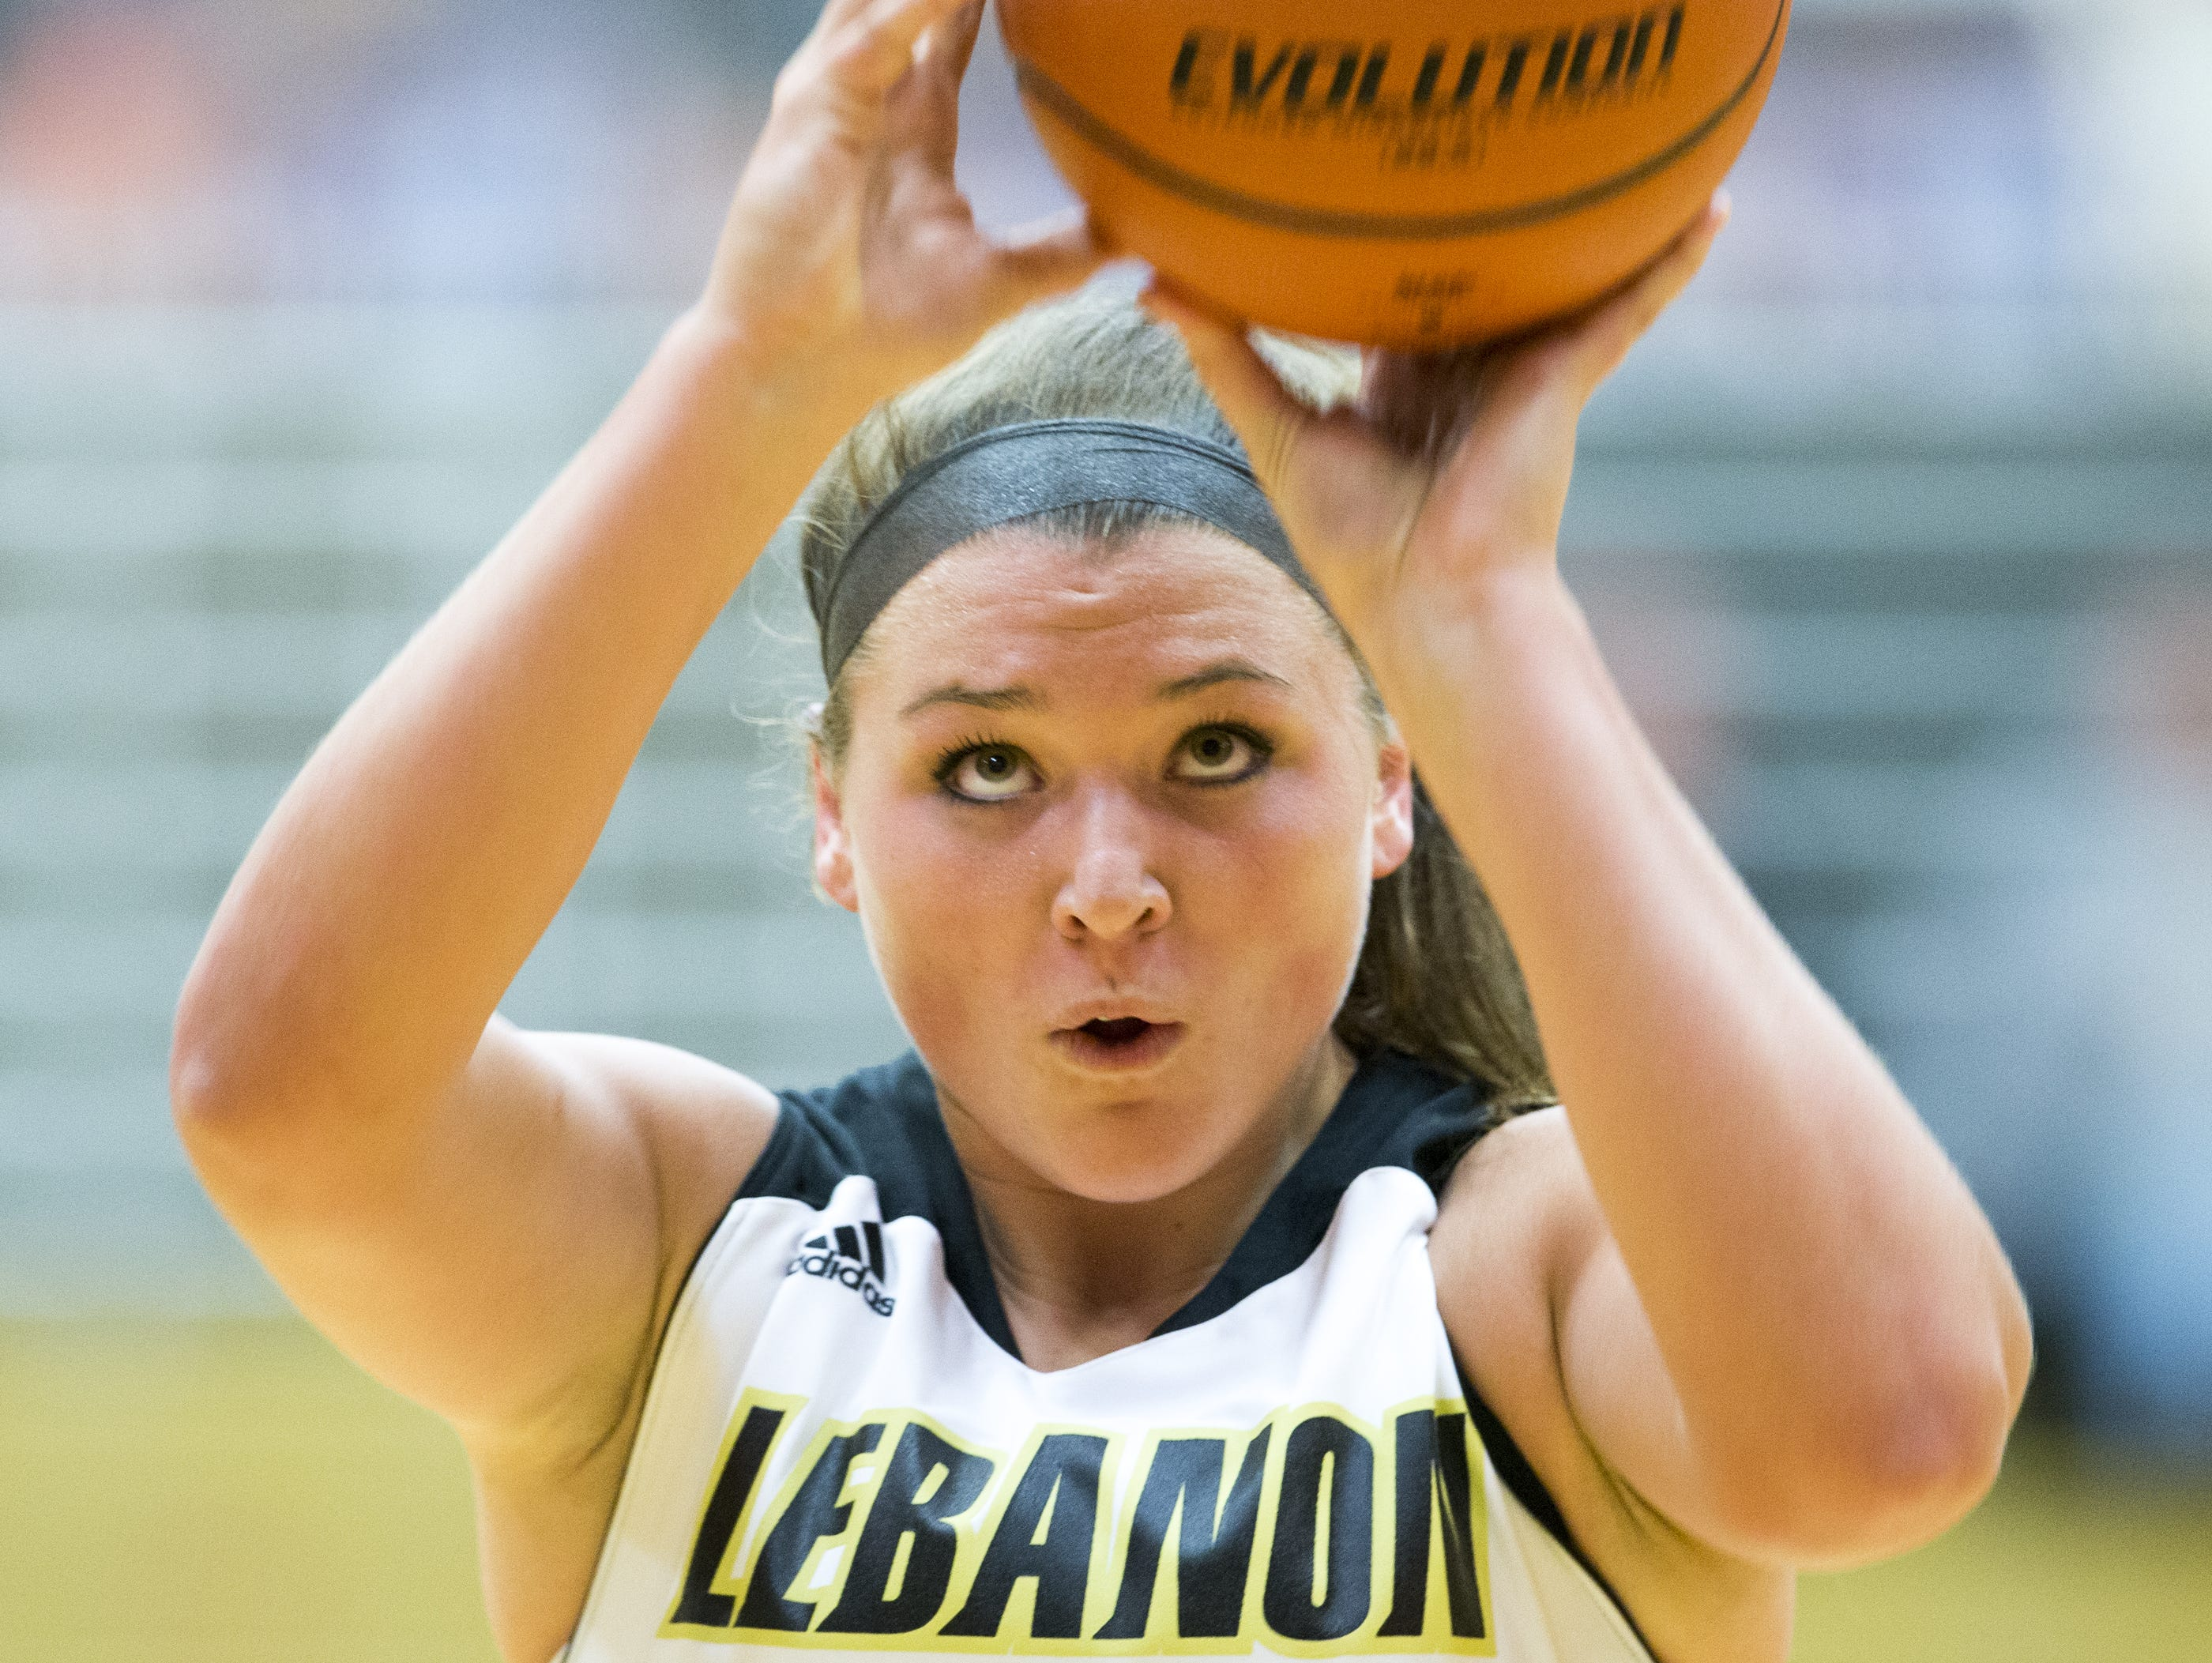 Kristen Spolyar shoots as she and her Lebanon High School team plays Hamilton Heights, Lebanon, Monday, Nov. 30, 2015. Spolyar, who has scored more than 2,000 points in her high school career, finished with 45 this game.